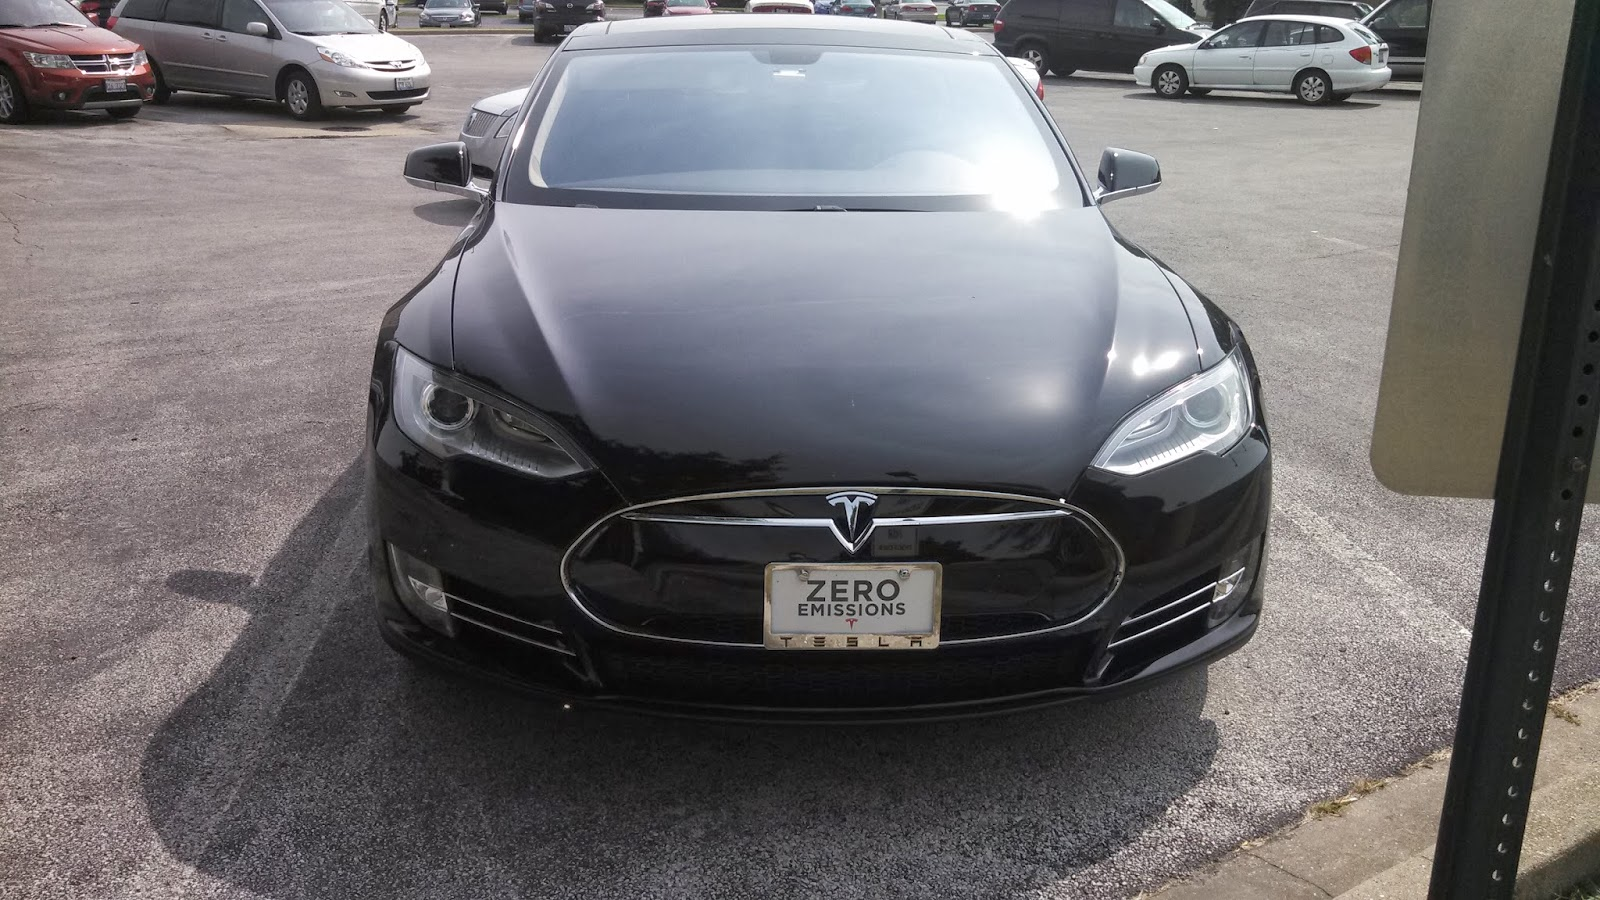 Black Tesla  Model S photo by Pat Thomas Aug 2013